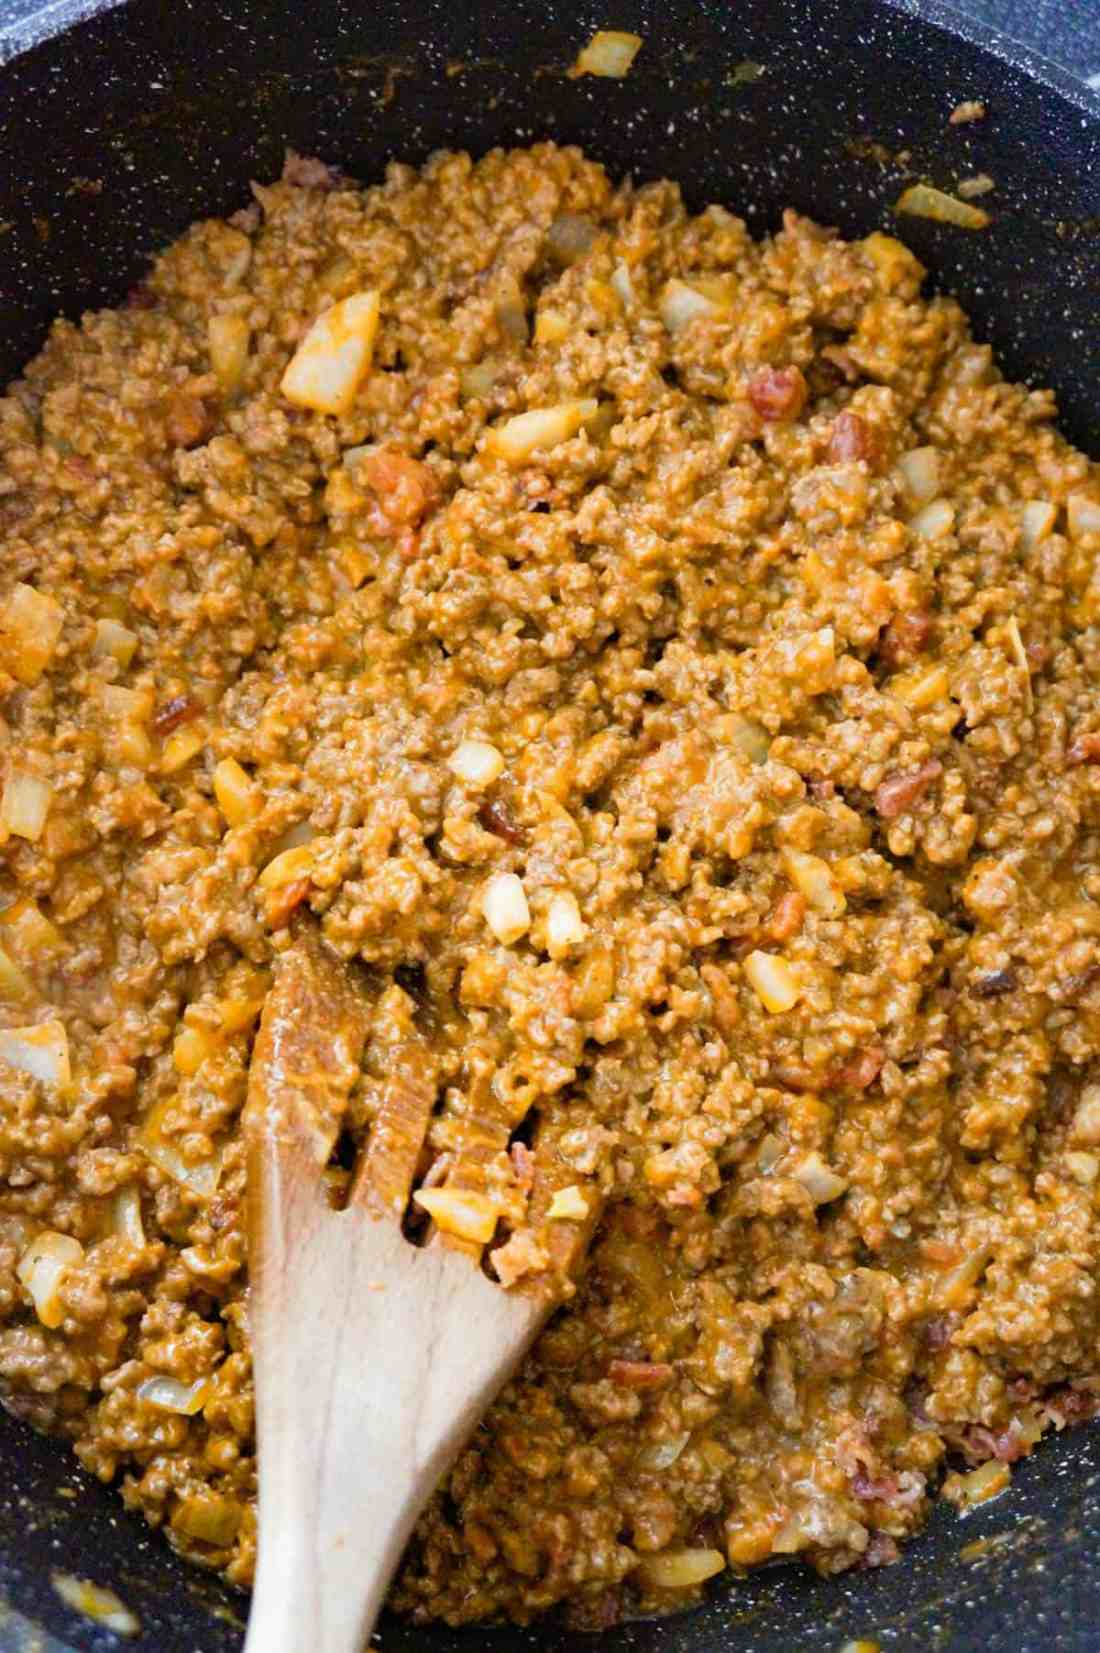 ground beef mixture in a saute pan